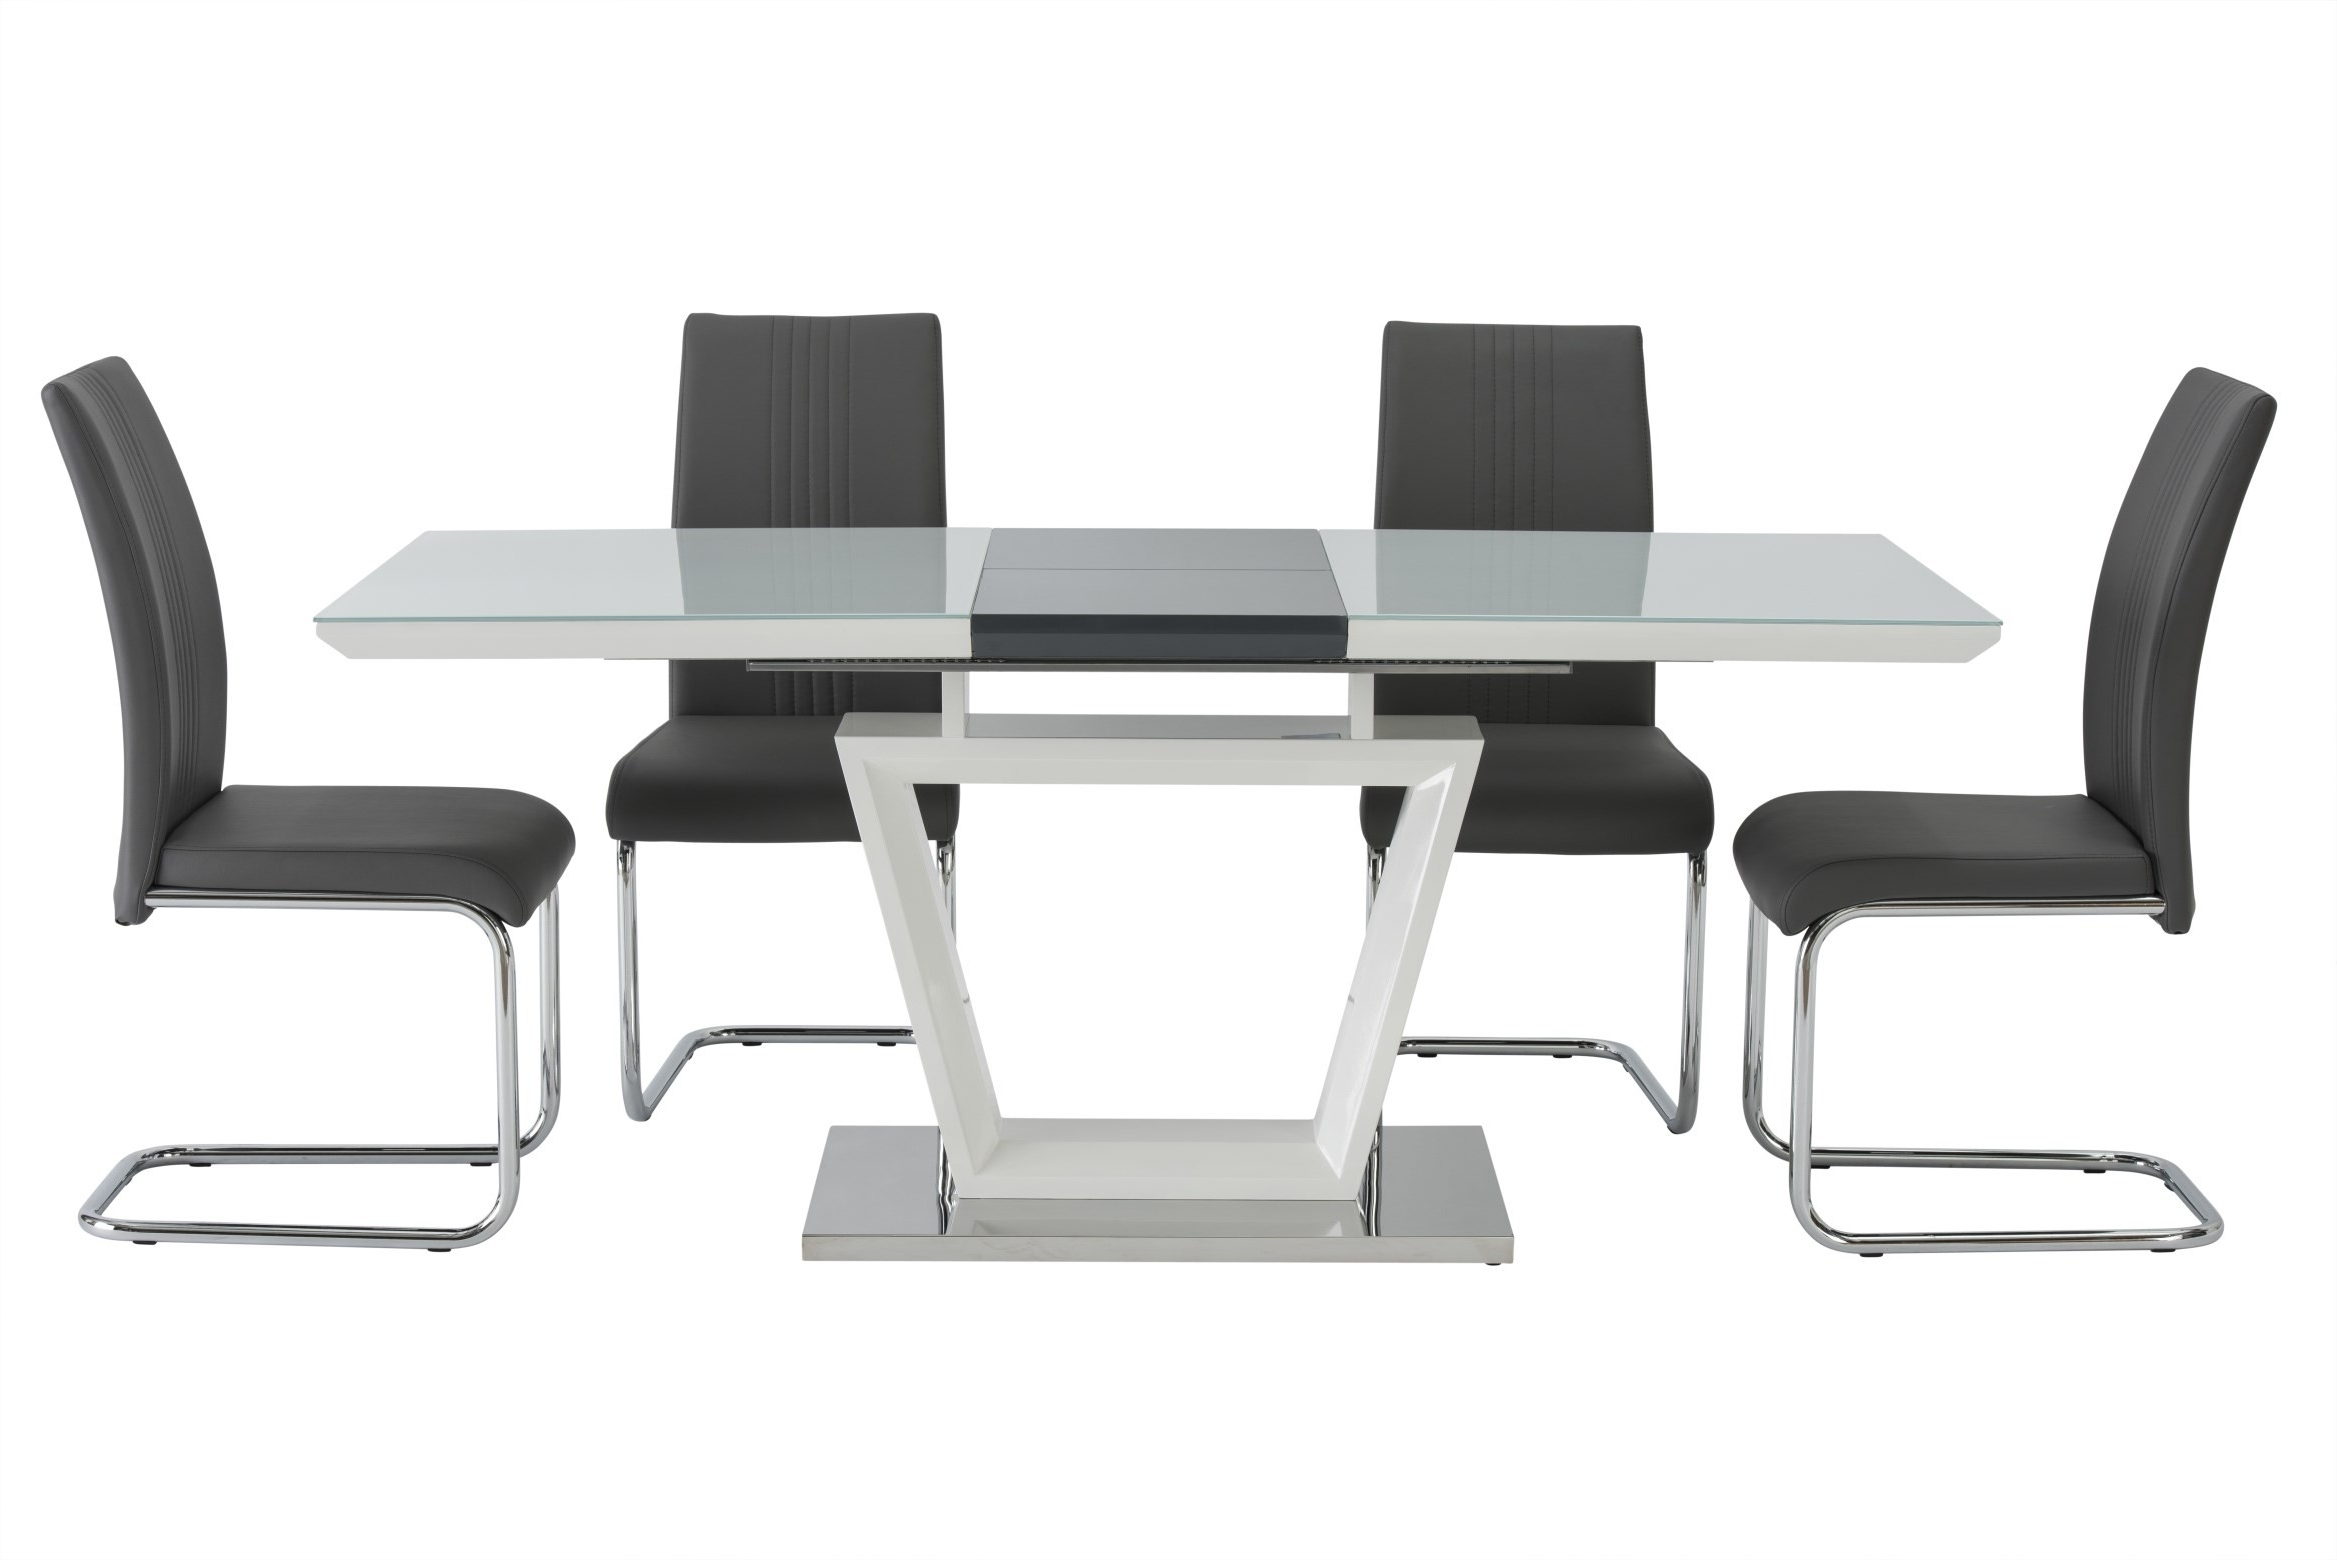 White Gloss Dining Tables 140Cm Regarding Preferred Arden High Gloss White With Grey Extendable Dining Table – With Or Without  Chairs (View 10 of 25)